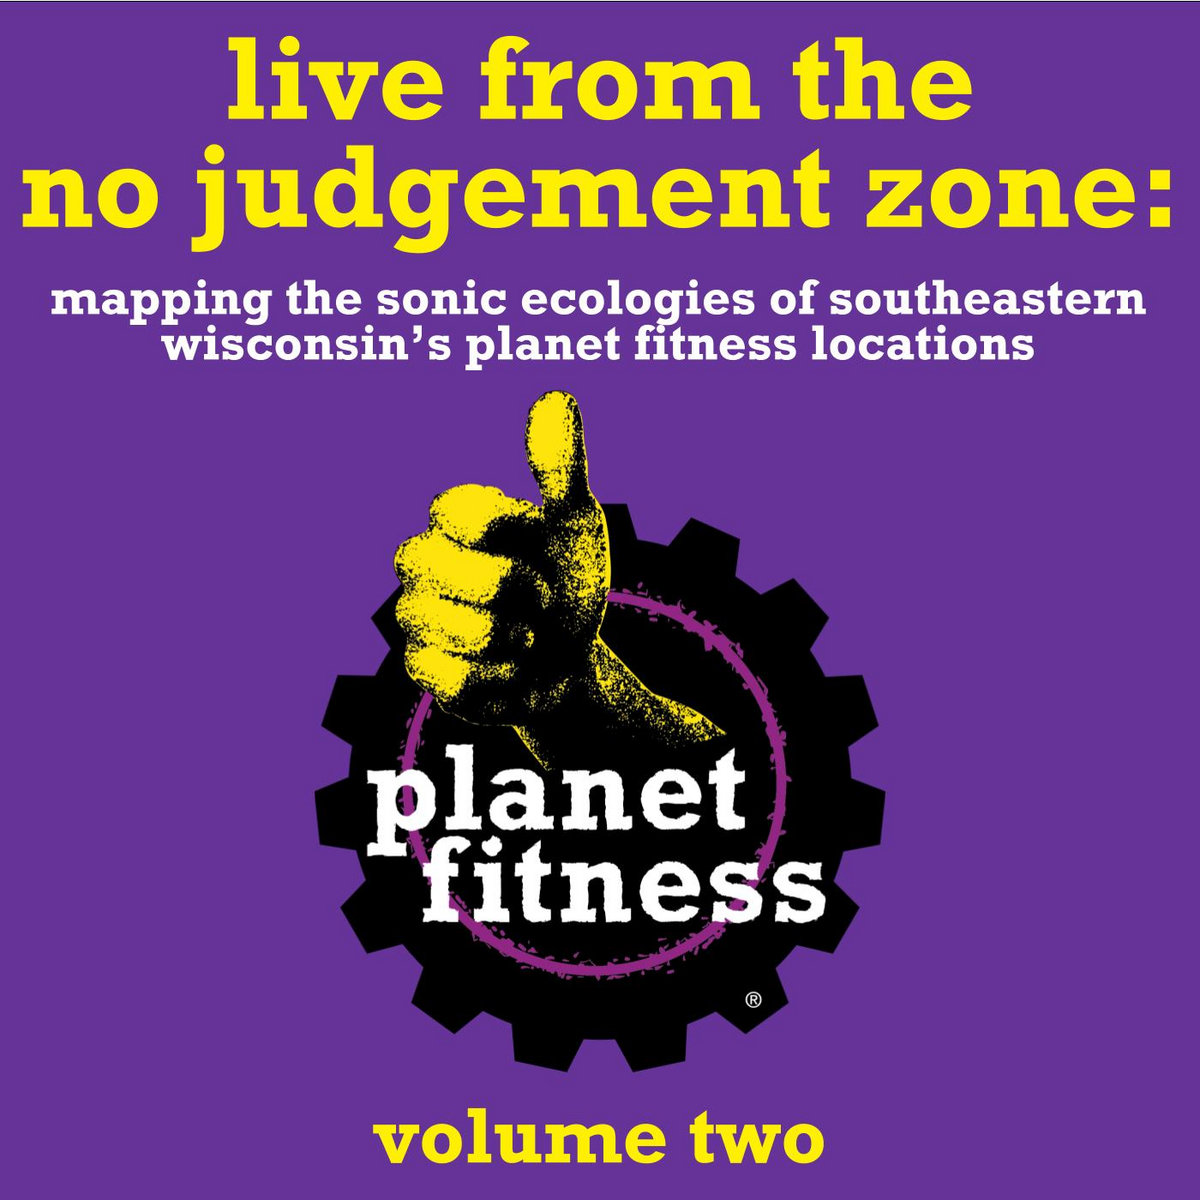 Milwaukee Downtown 02 13 2020 Elliptical 8 Miles 55 00 Level 12 Resistance 758 Calories Burned 1 Lunk Alarm The Members And Employees Of Planet Fitness Ftam Productions